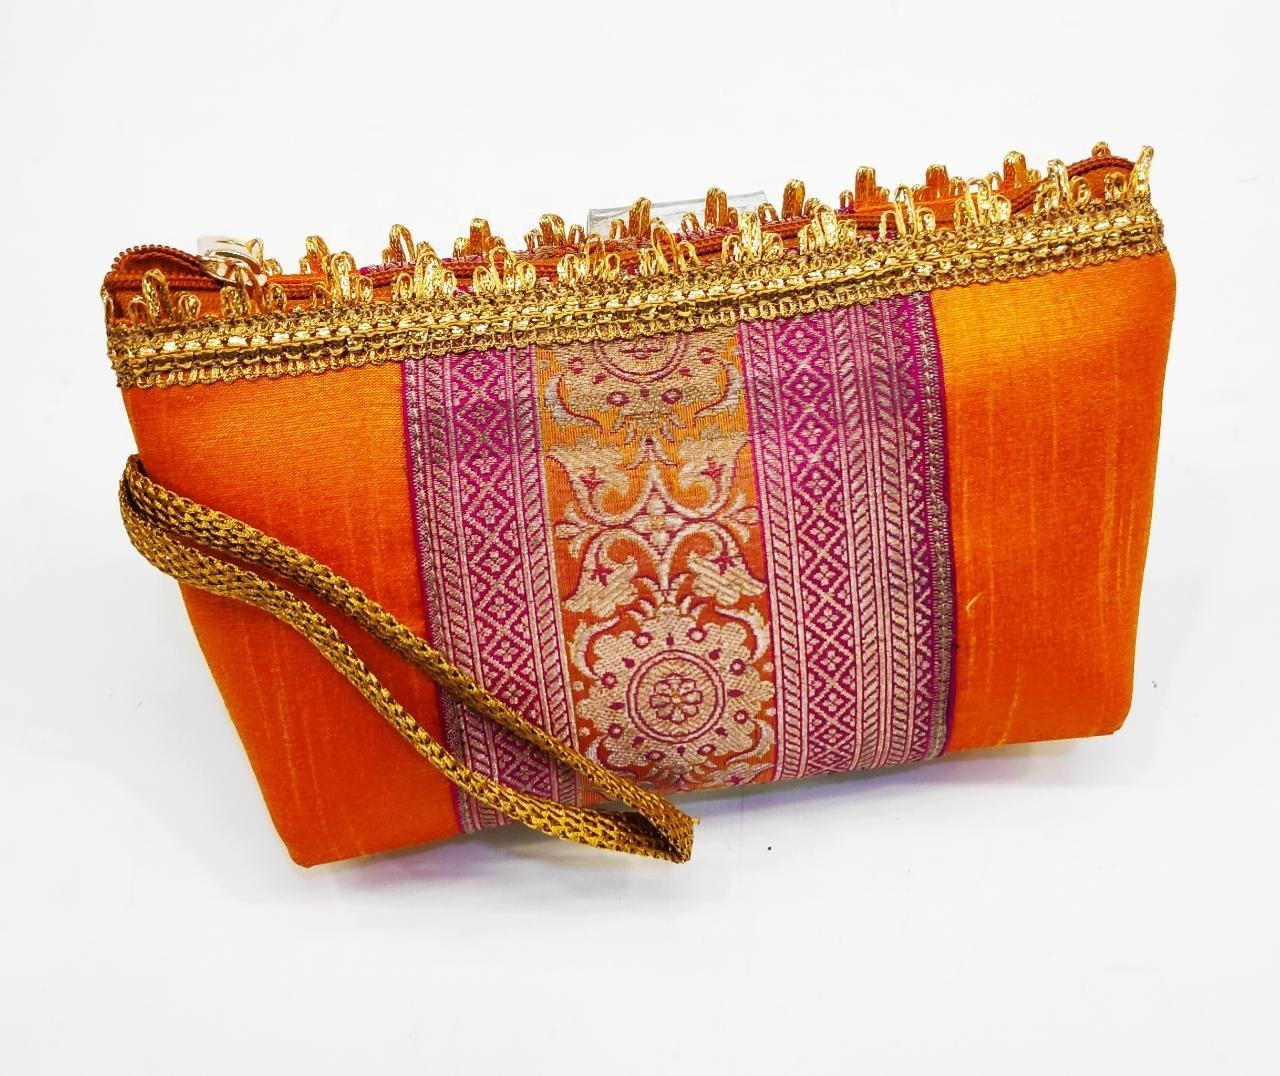 Indian Handmade Ethnic latest designs zipper pouch clutch coin purse wedding uses handbags